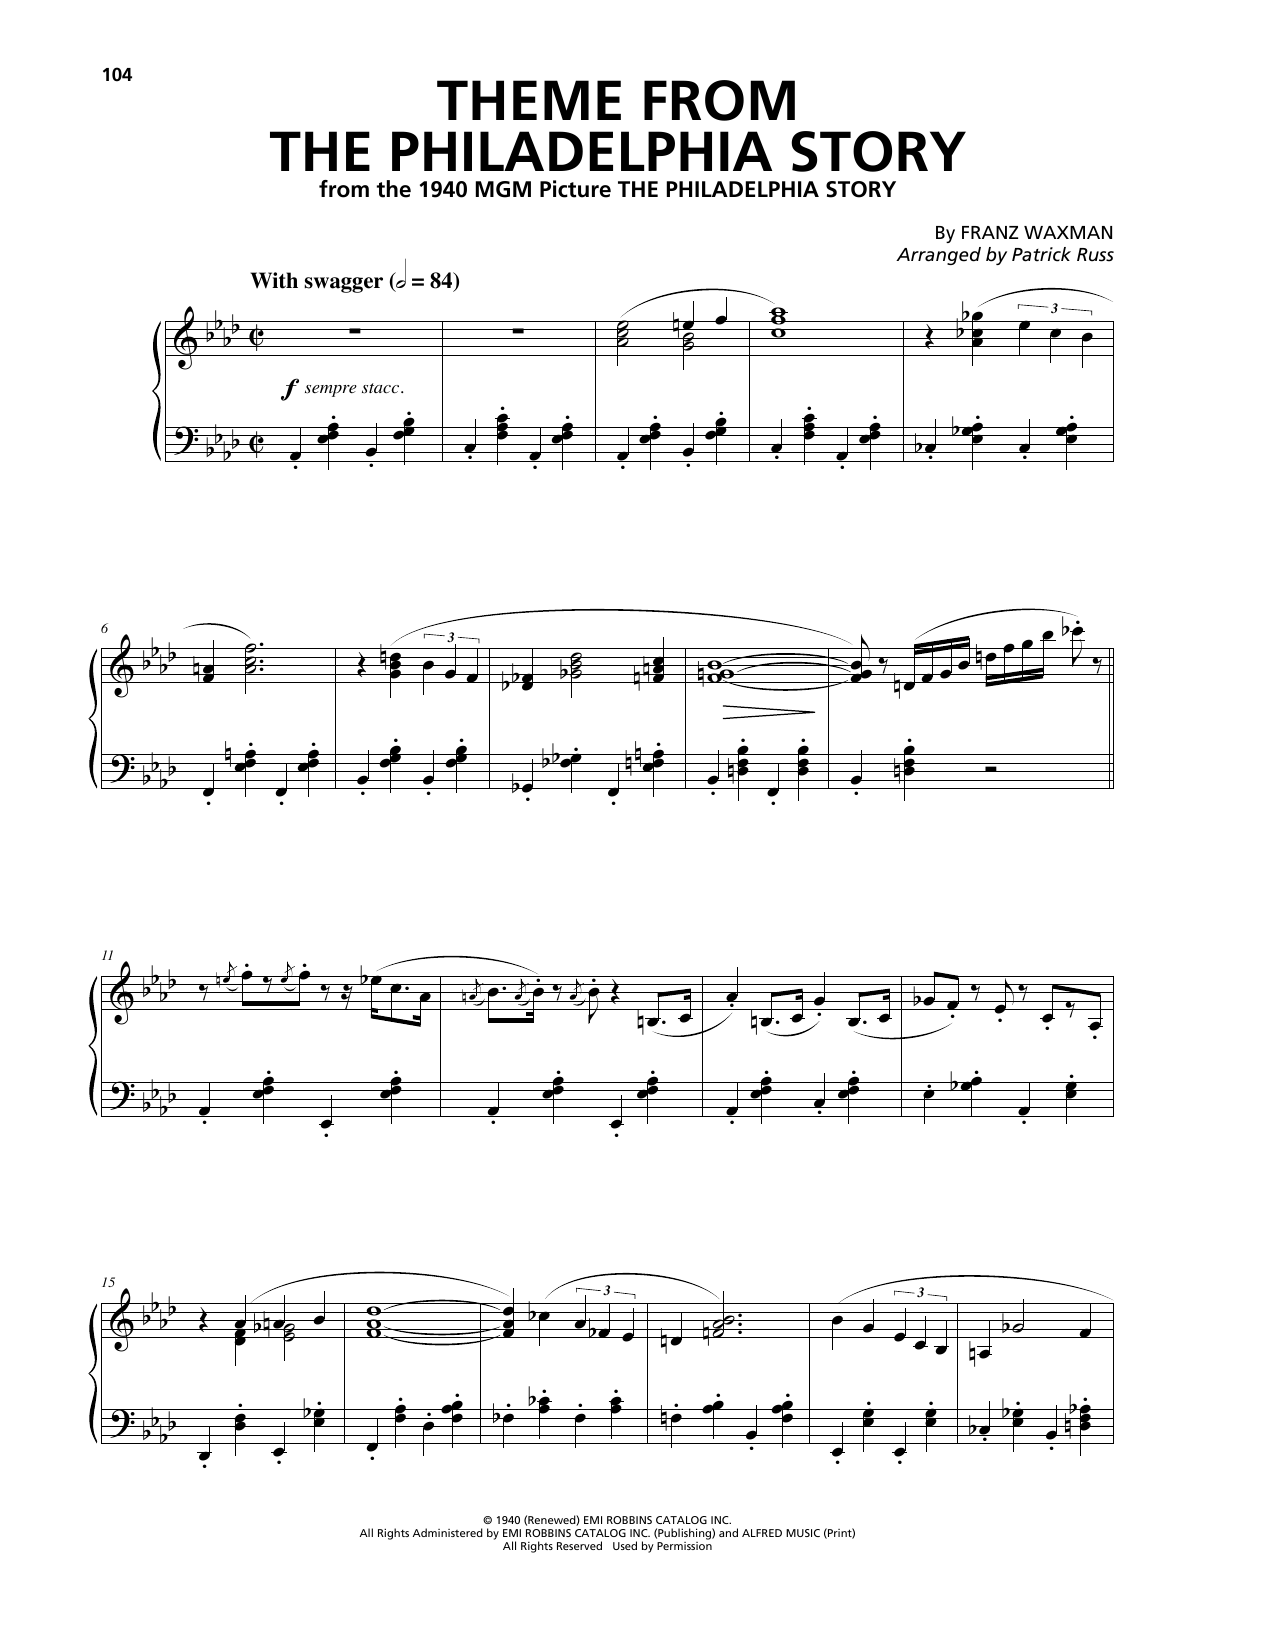 Franz Waxman Theme From The Philadelphia Story sheet music notes and chords. Download Printable PDF.